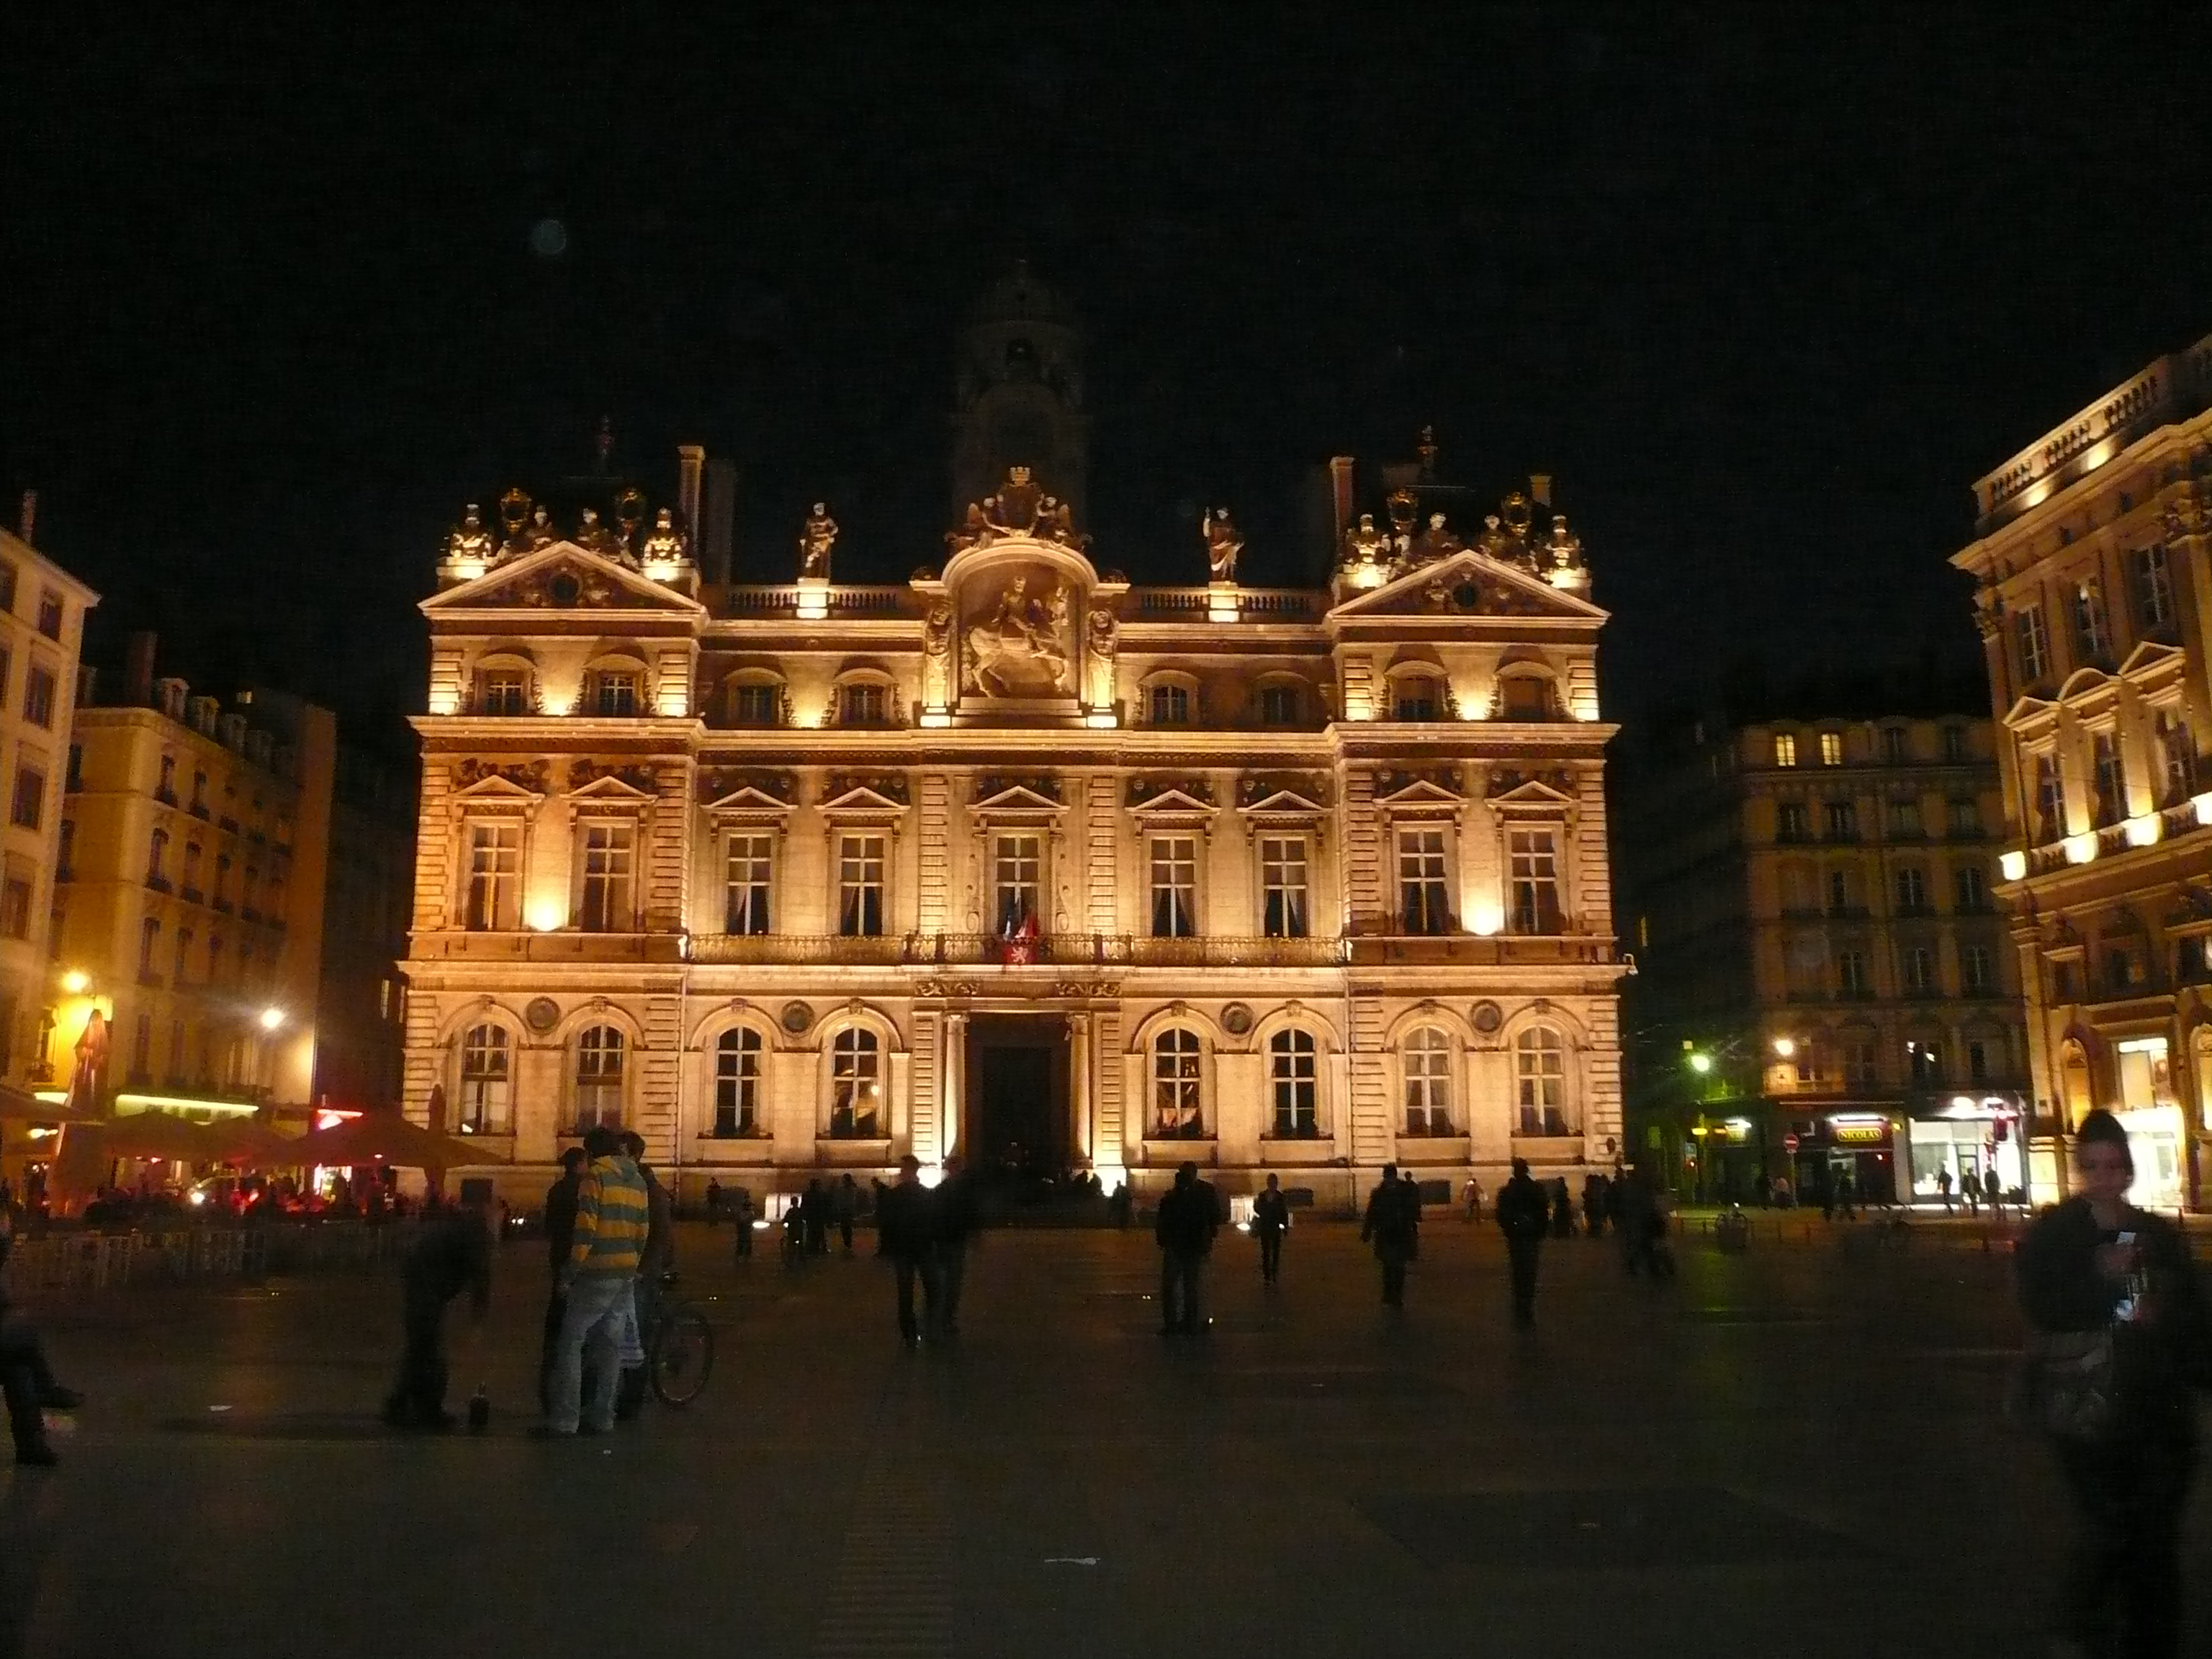 Lyon square at night